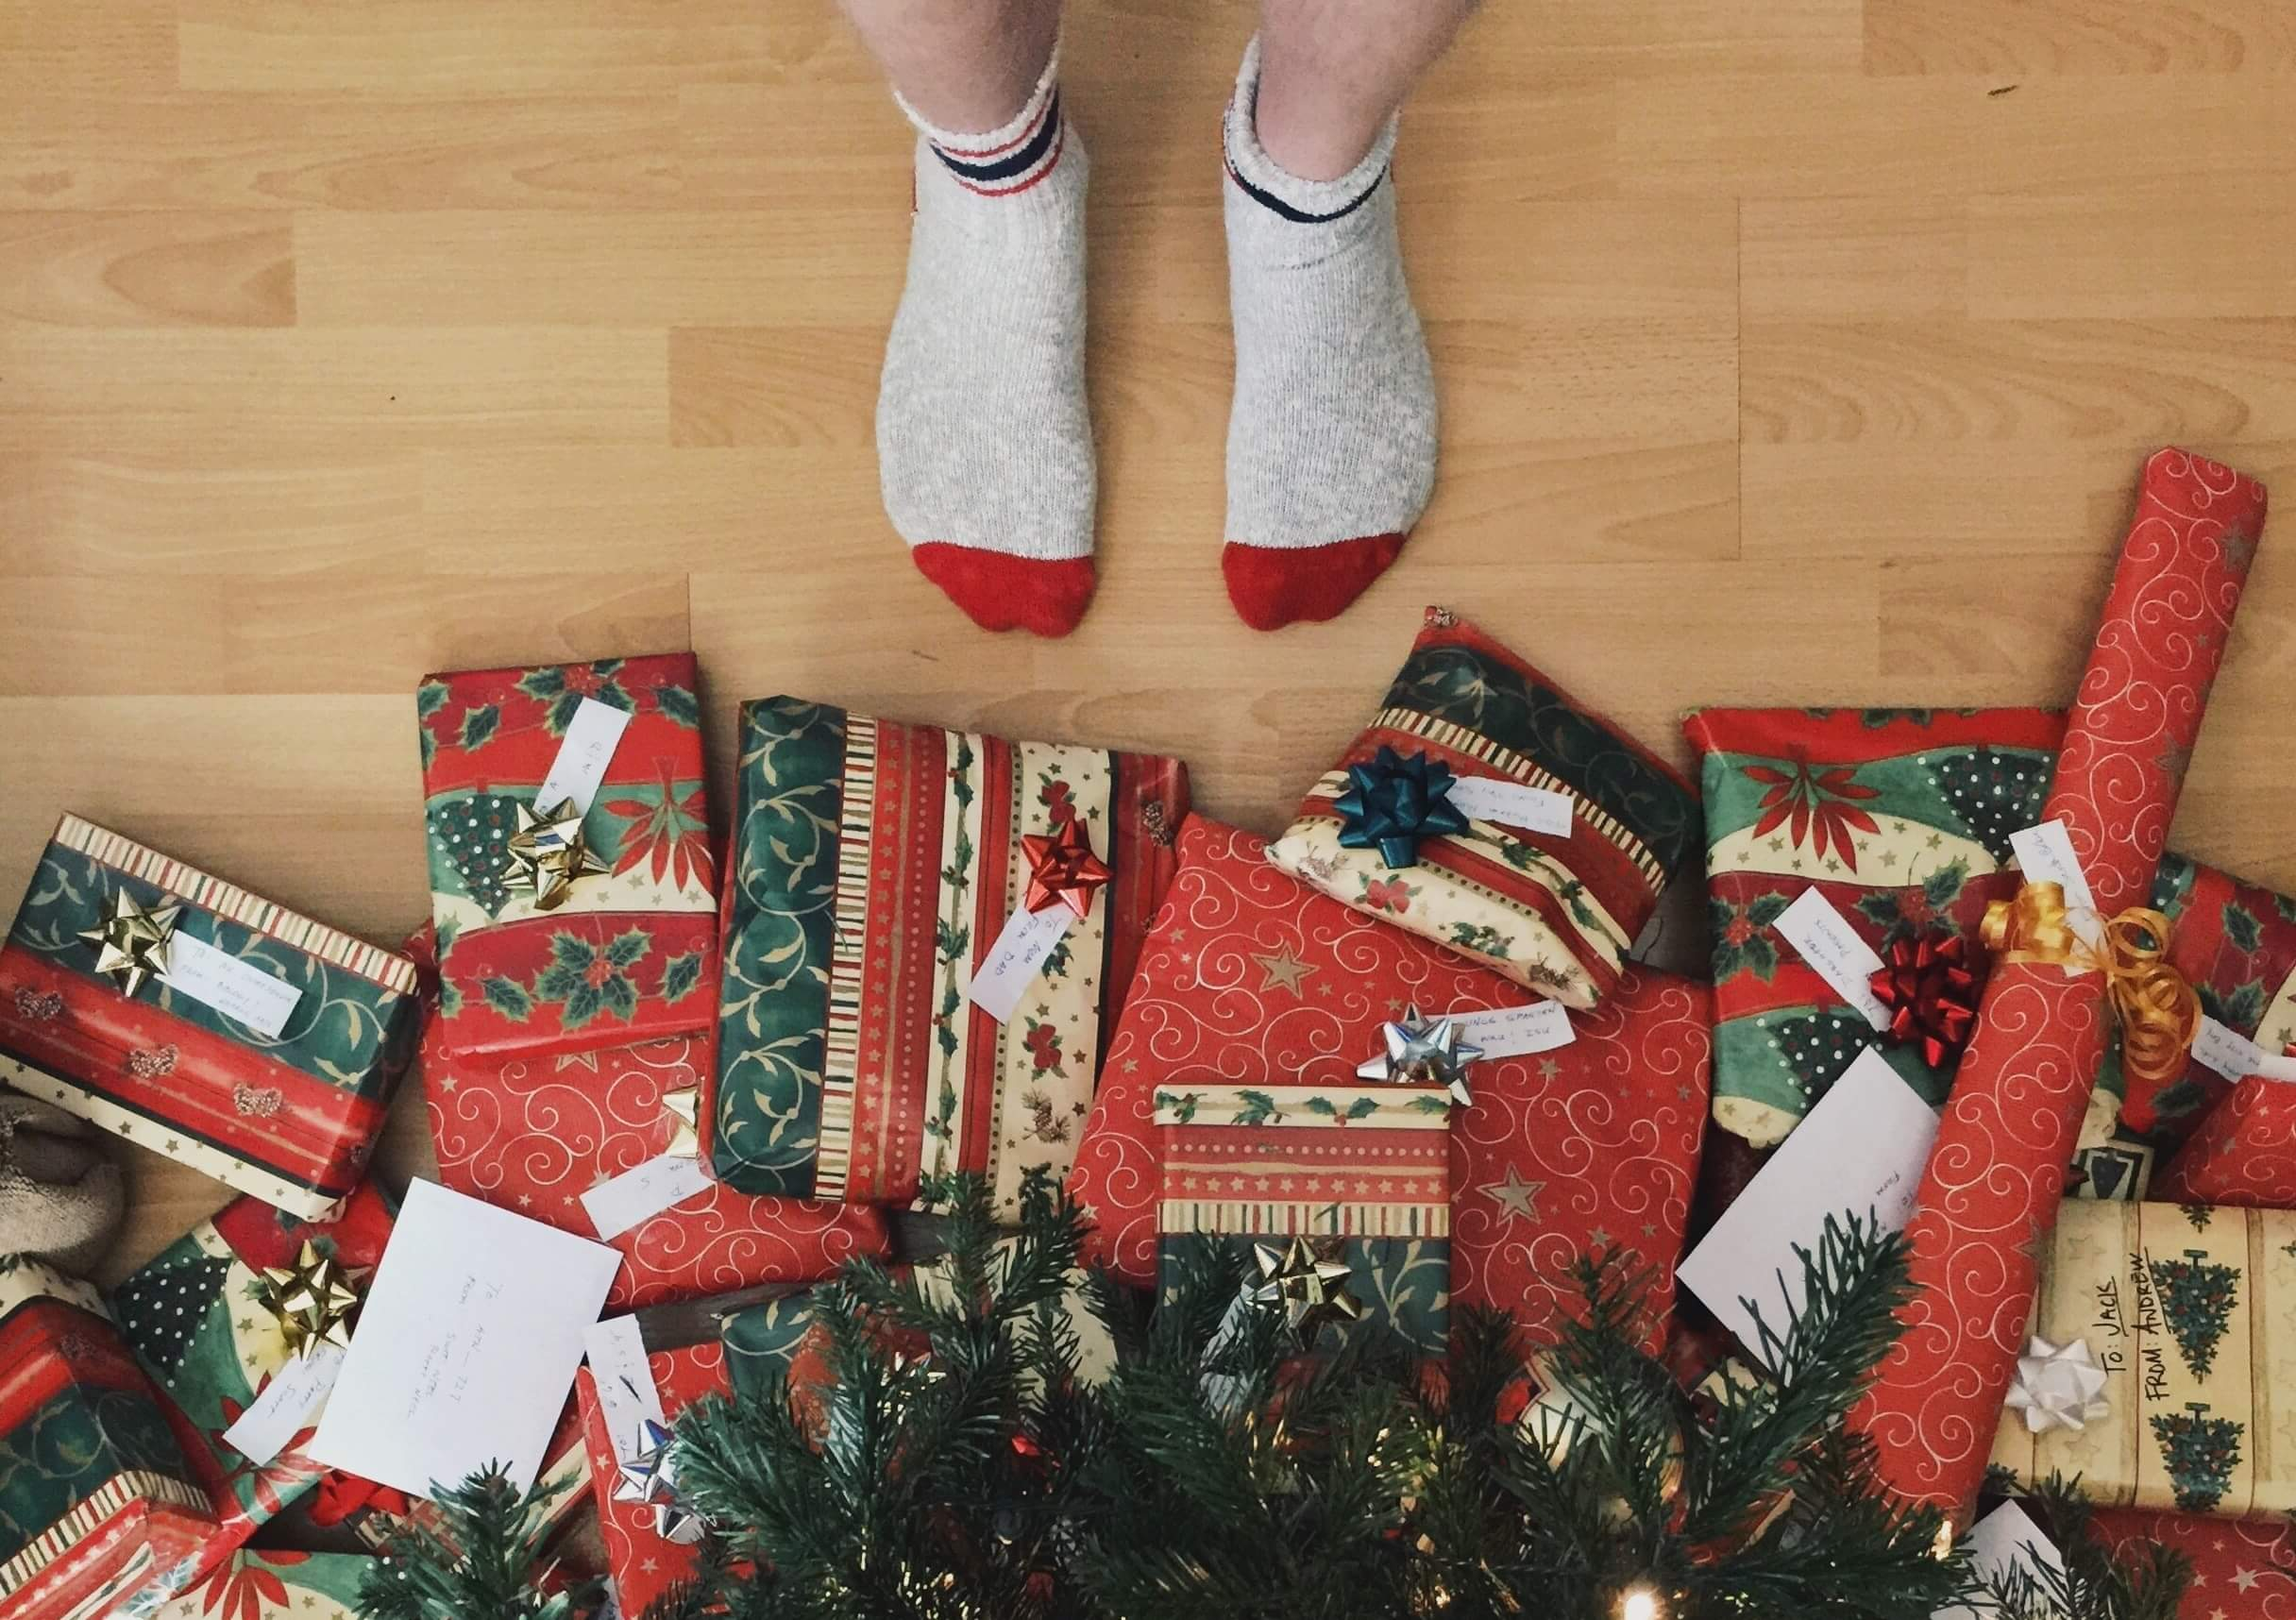 11 Conversion Tips Guaranteed to Give Your Business a Very Merry Christmas